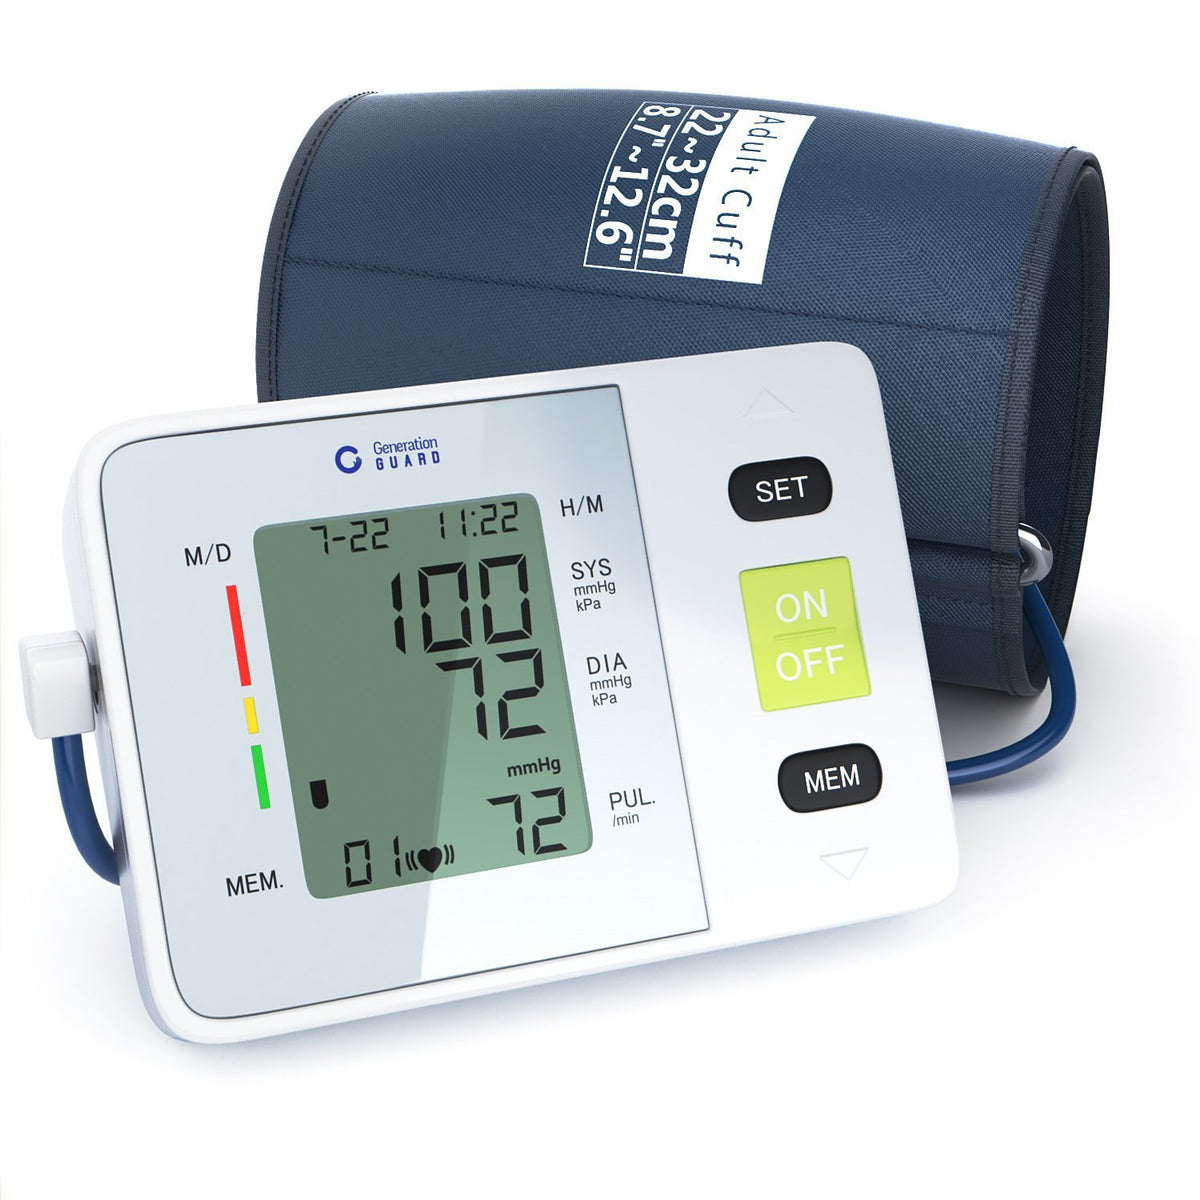 High blood pressure (hypertension) - Symptoms and... - Mayo Clinic